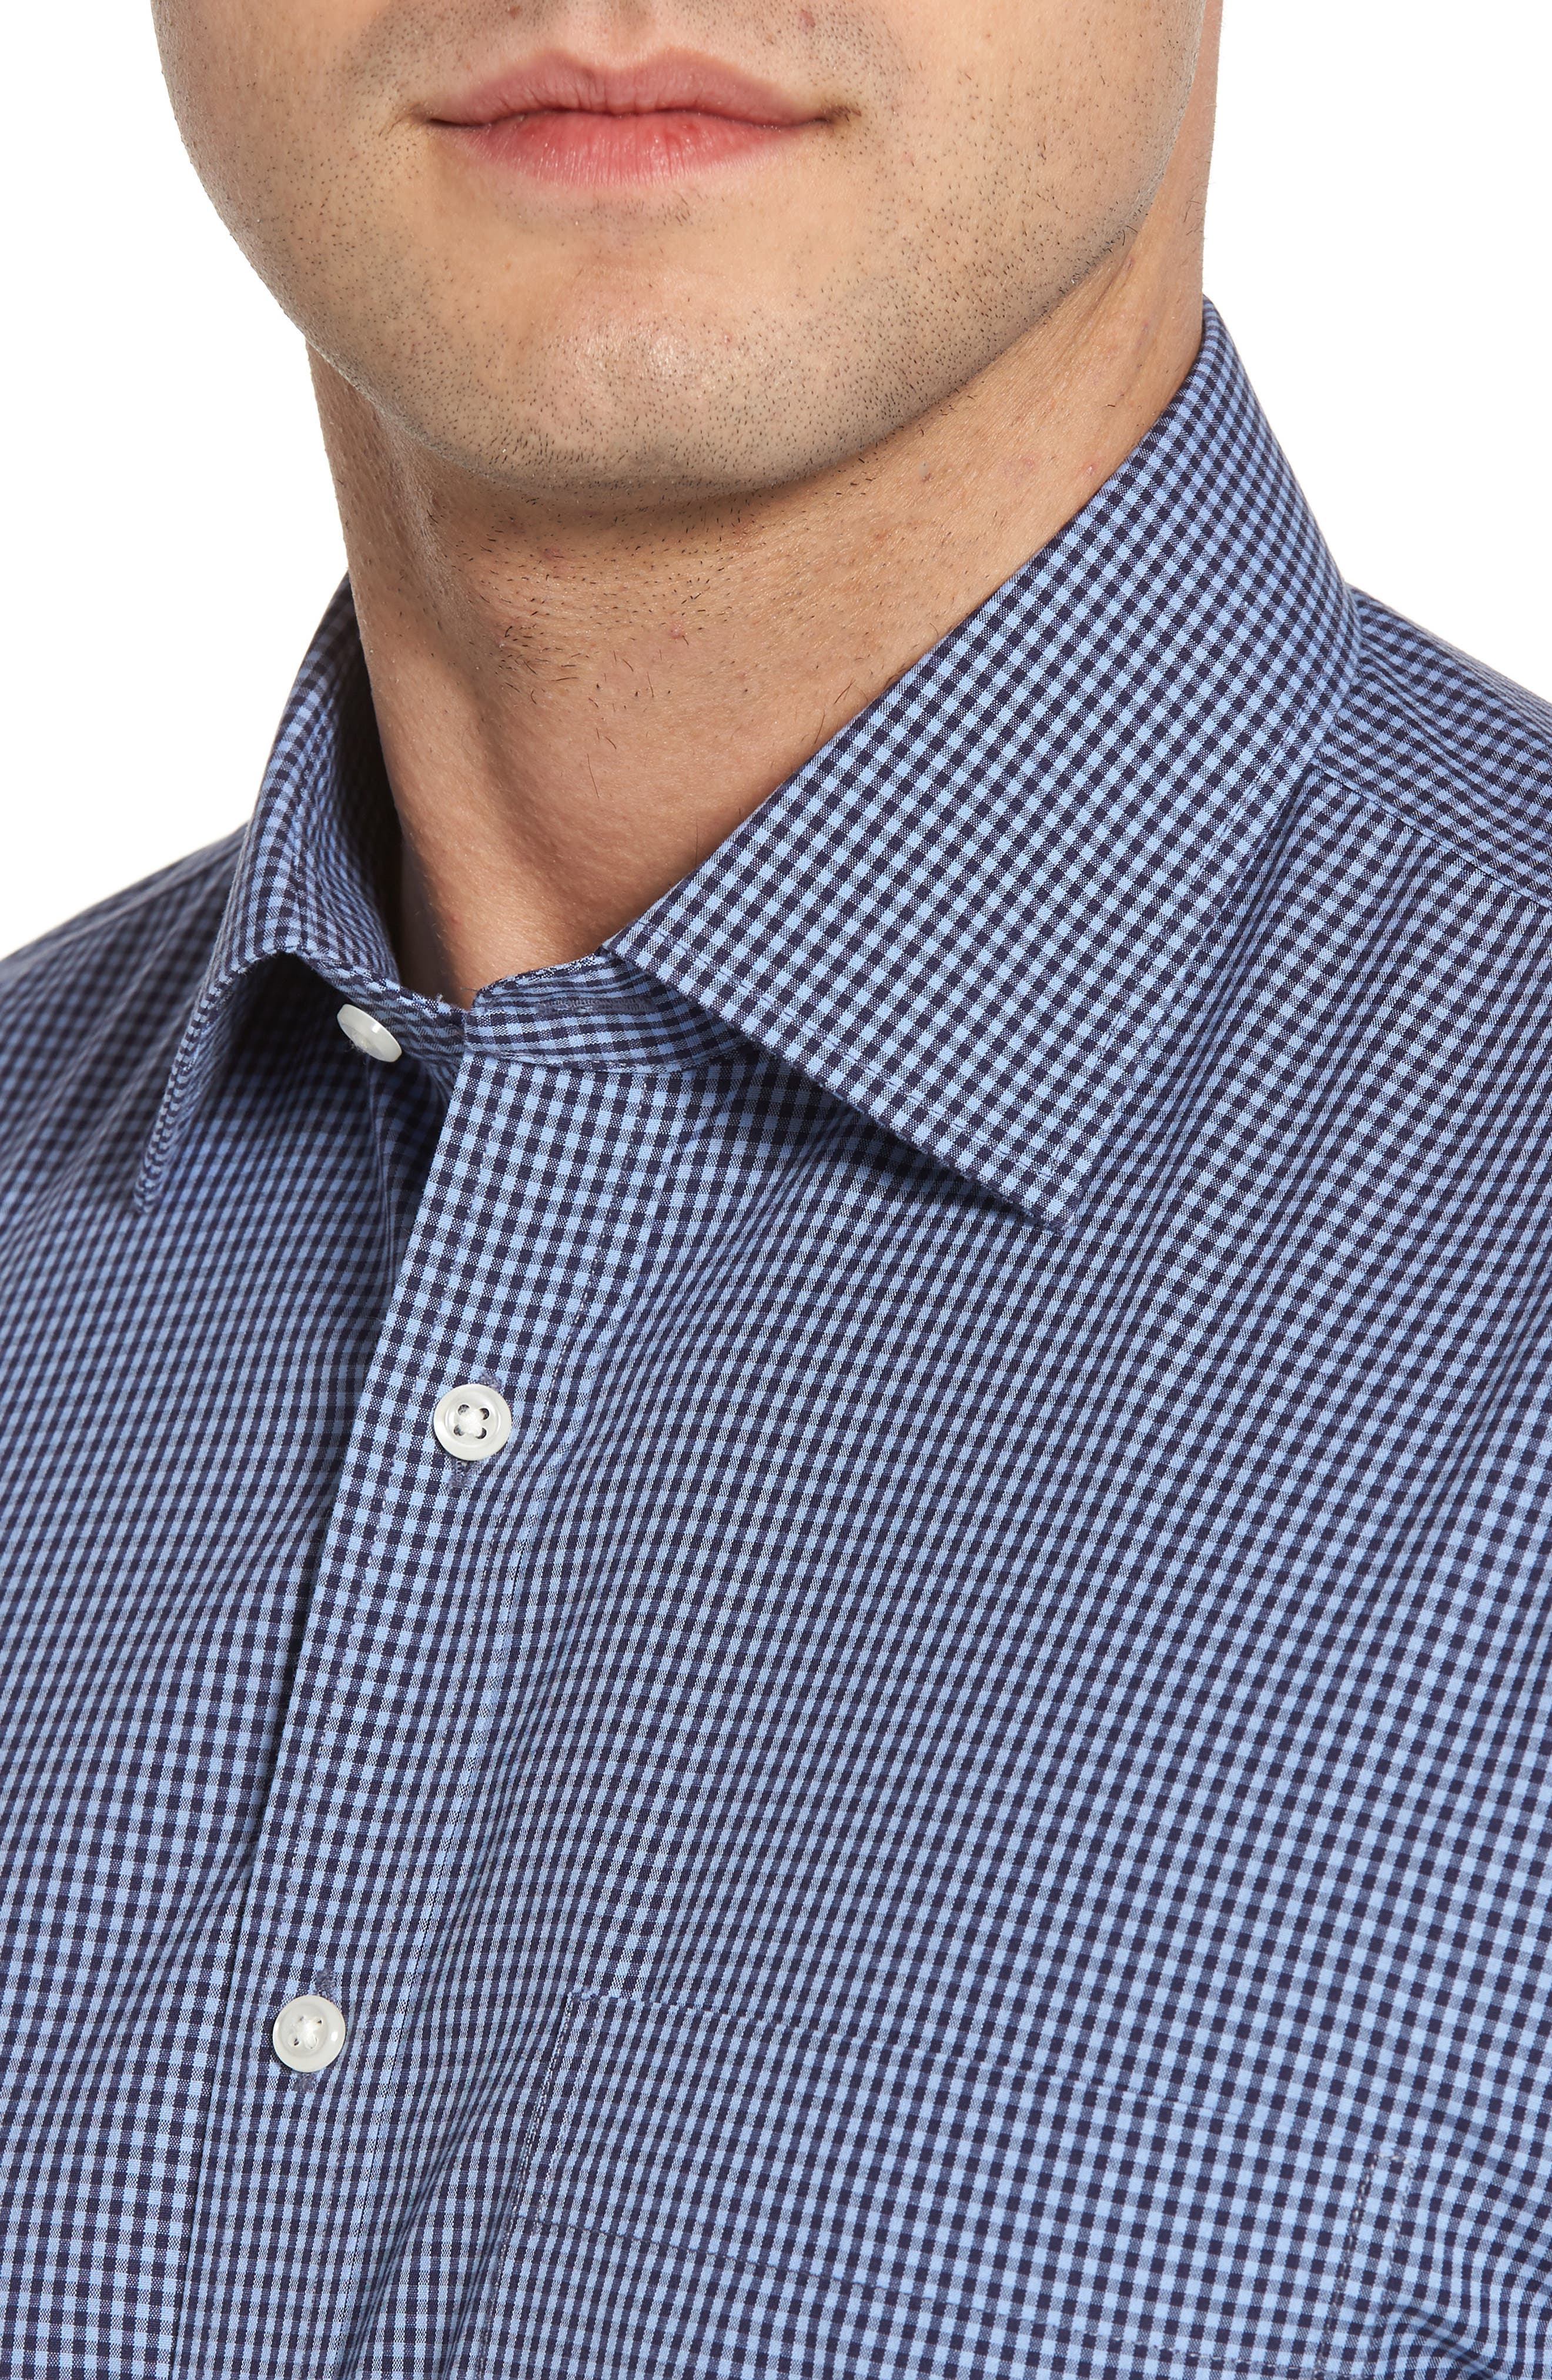 Smartcare Classic Fit Check Dress Shirt,                             Alternate thumbnail 6, color,